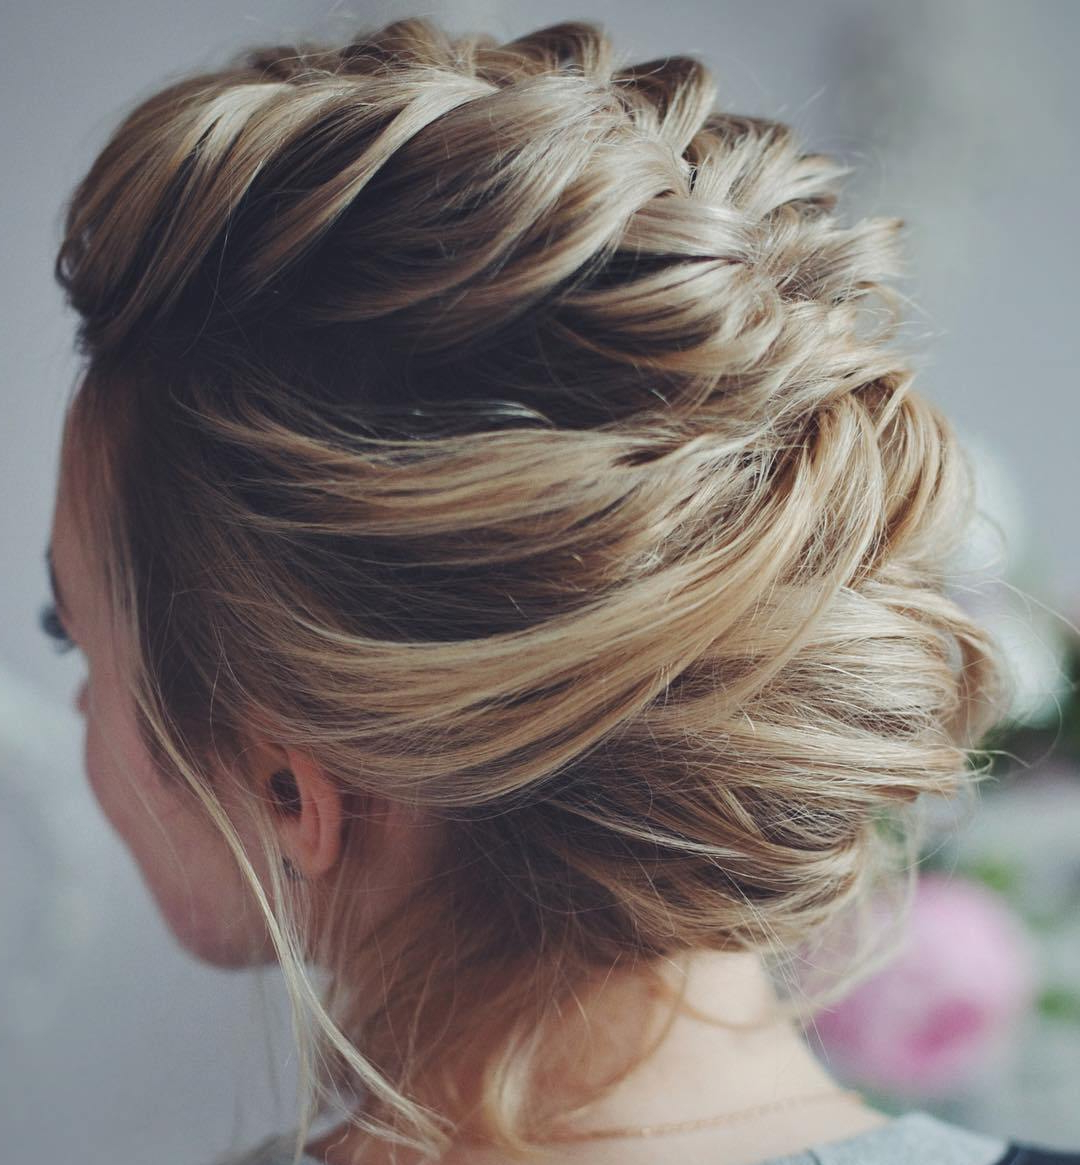 50 Hottest Prom Hairstyles For Short Hair With Popular Braid And Fluffy Bun Prom Hairstyles (View 3 of 20)